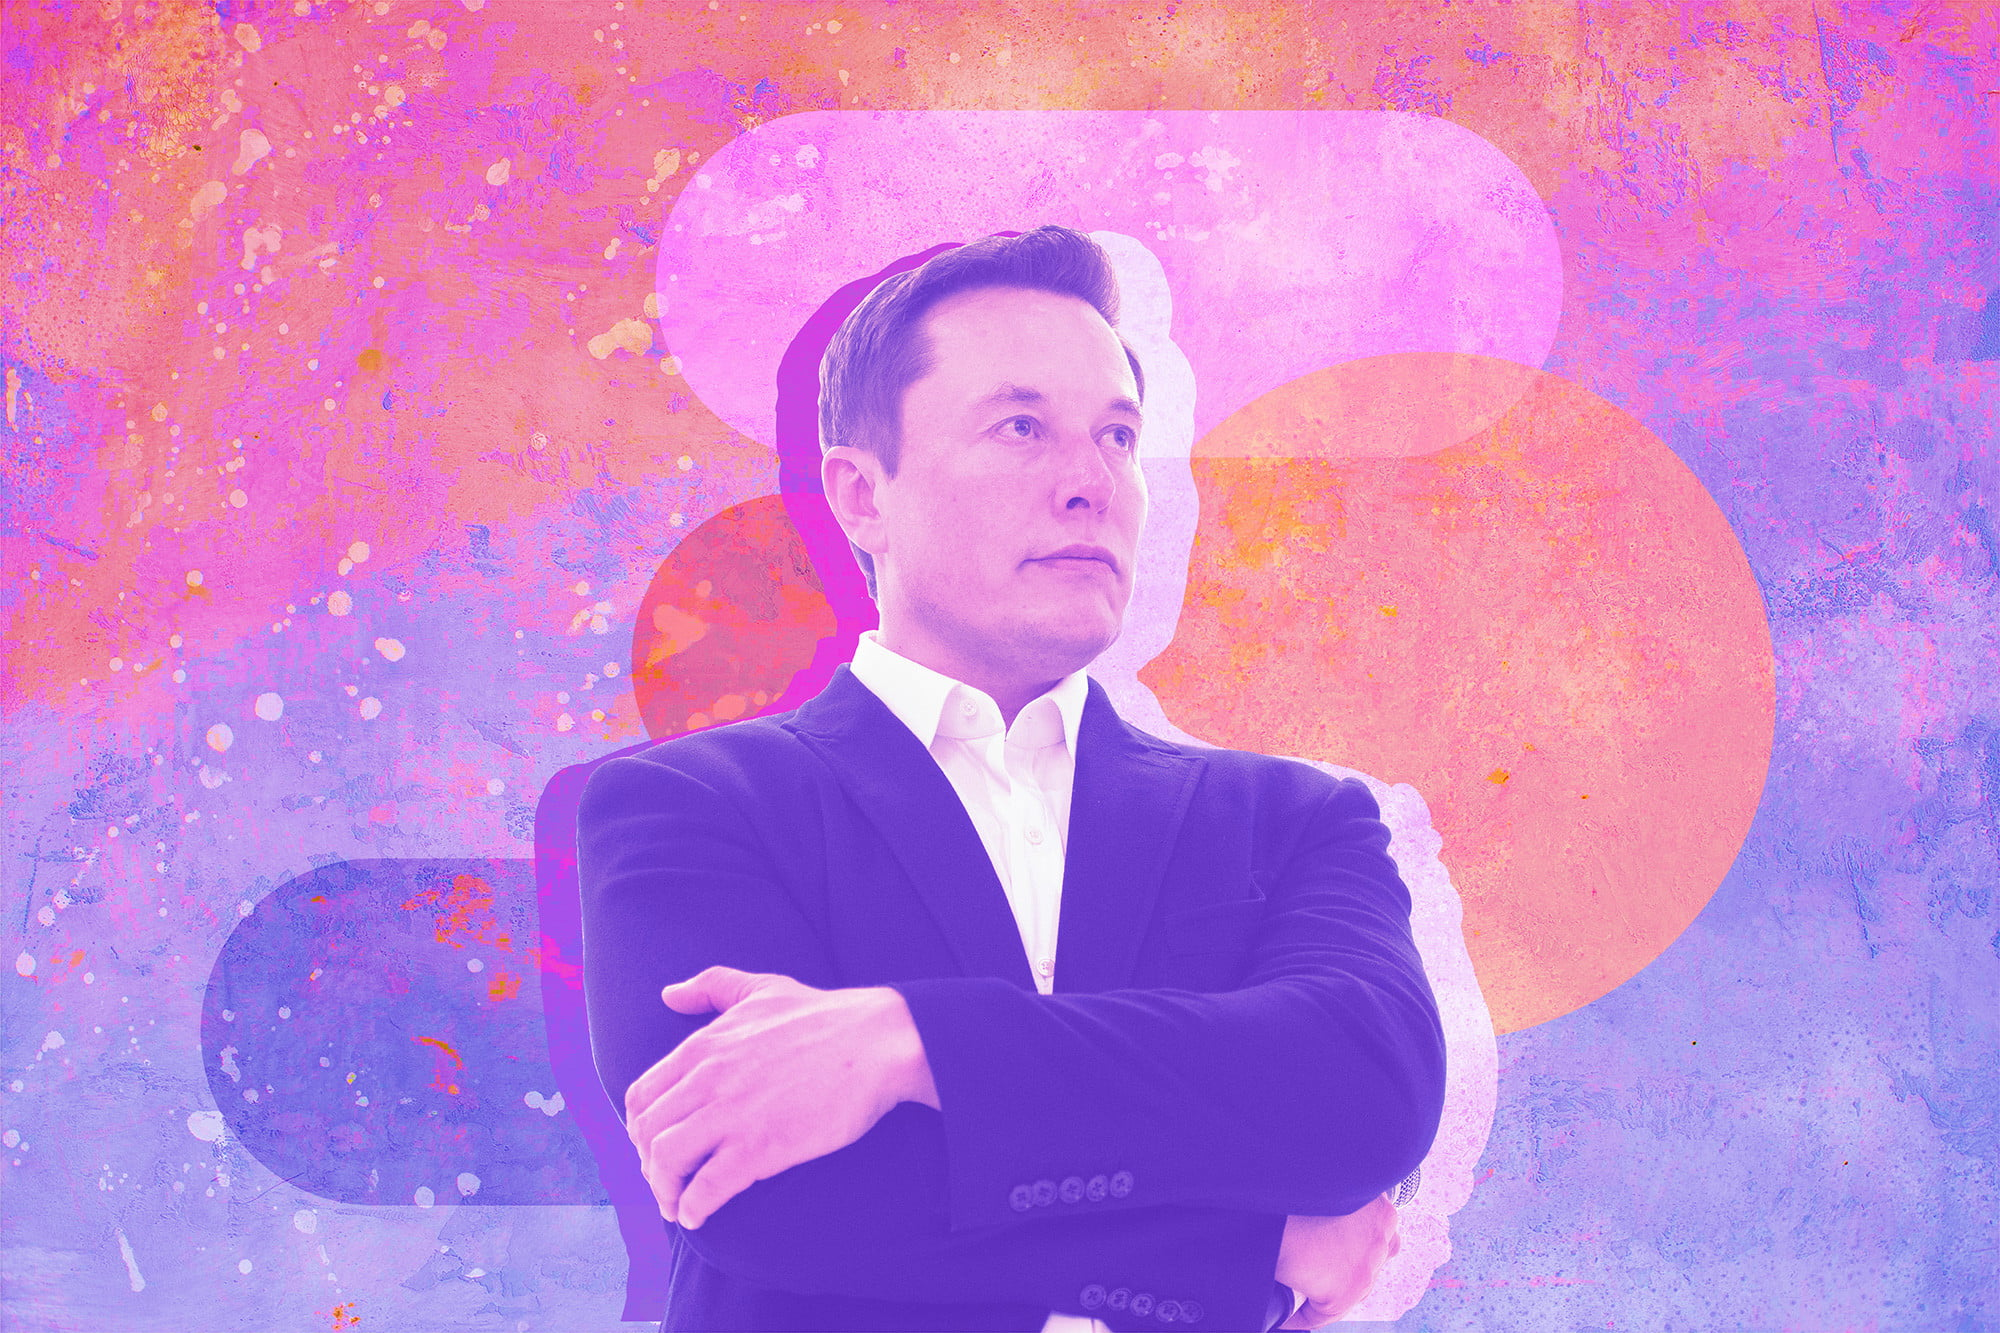 tesla and spacex CEO elon musk stylized image